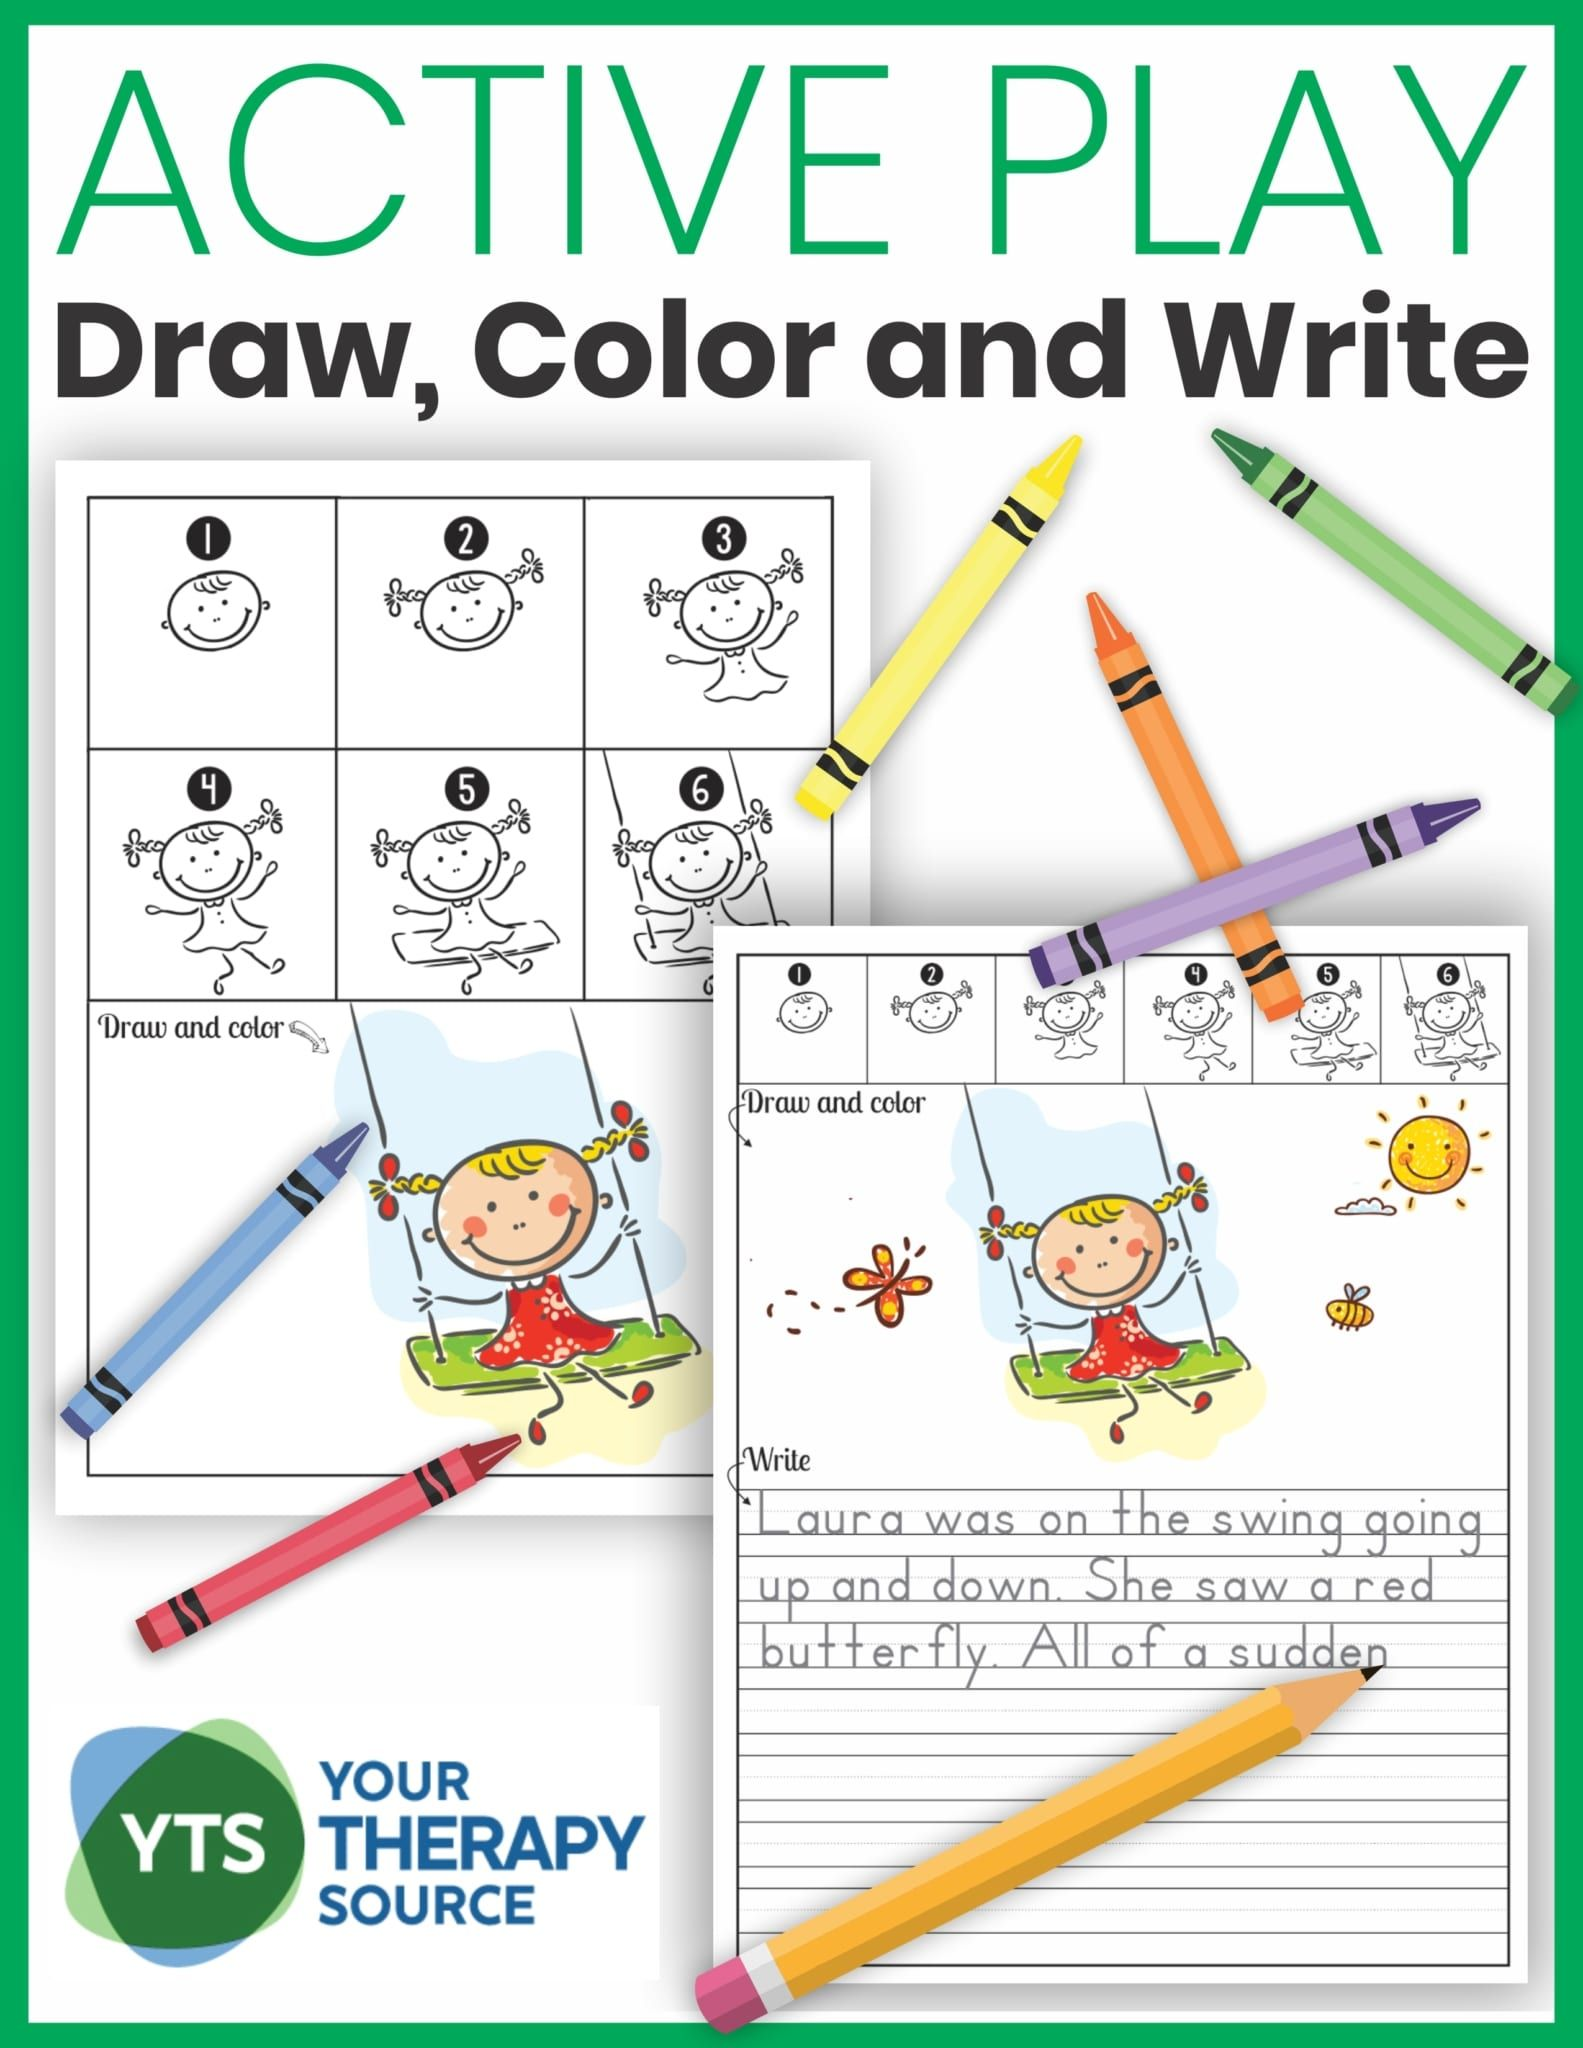 Directed Drawings Draw Color And Write Active Play Theme Your Therapy Source Play Activities Writing Activities Preschool Learning